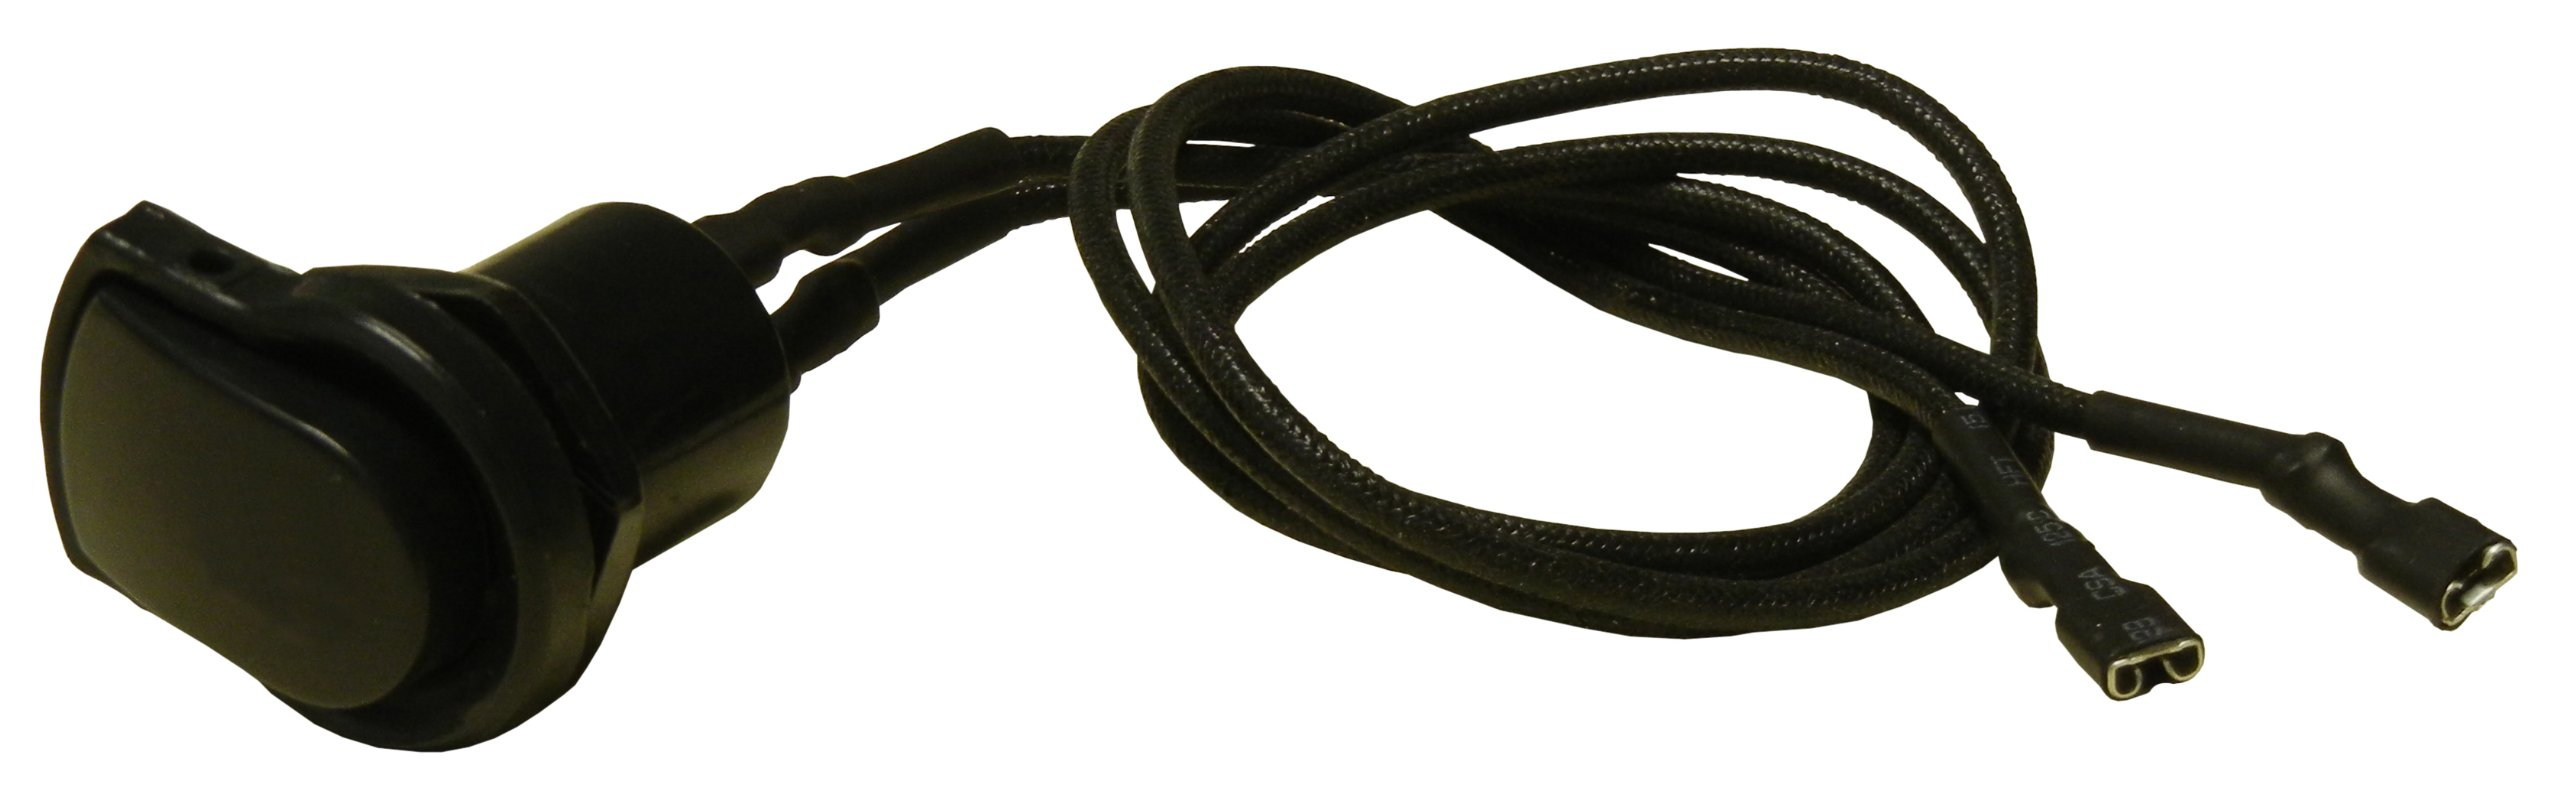 Music City Metals 03152 Igniter Switch Replacement for Select Gas Grill Models by Charbroil, Coleman and Others